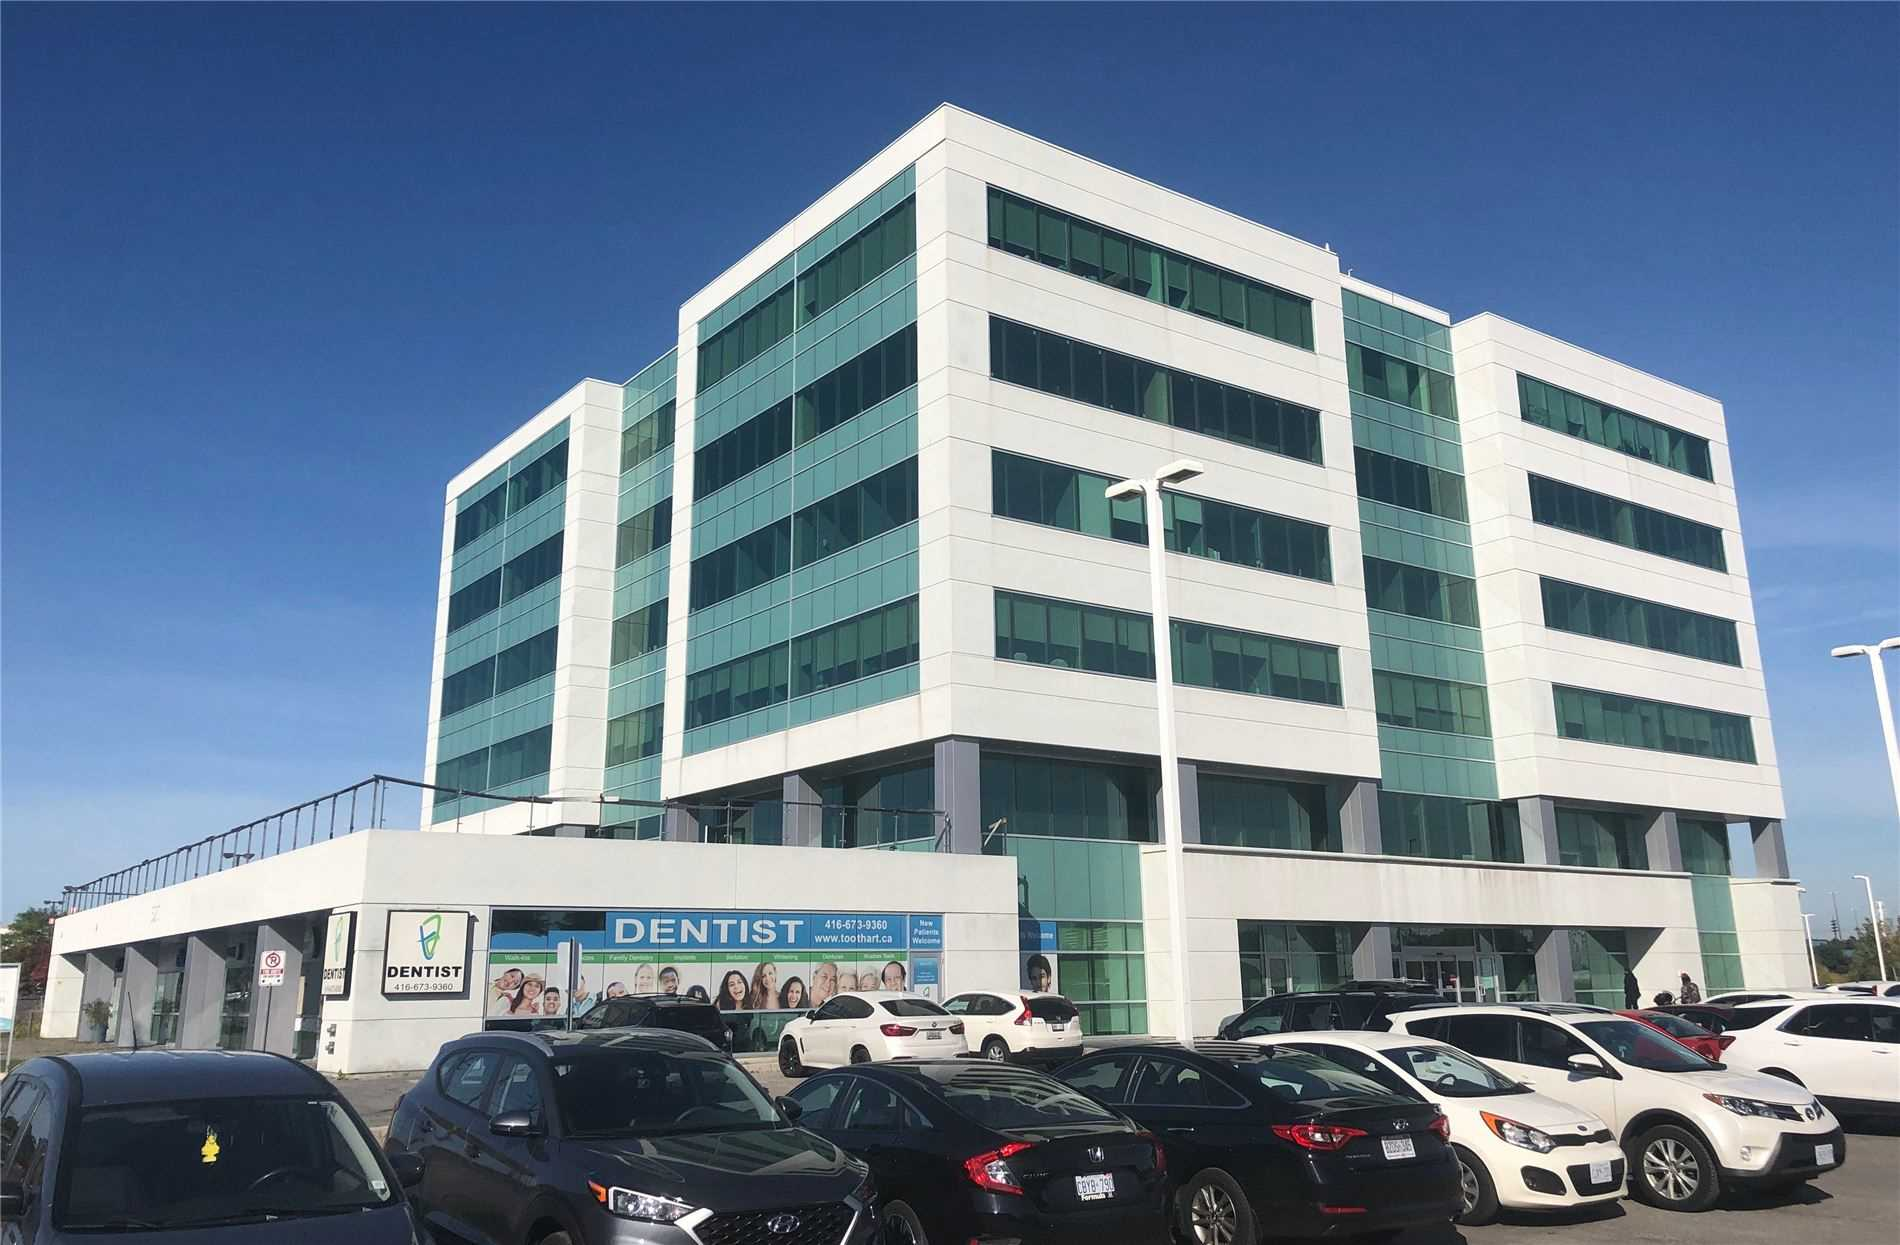 520 Ellesmere Rd 604, Wexford-Maryvale, Toronto, Ontario M1R4E6, ,Office,For Lease,Ellesmere,E5060105